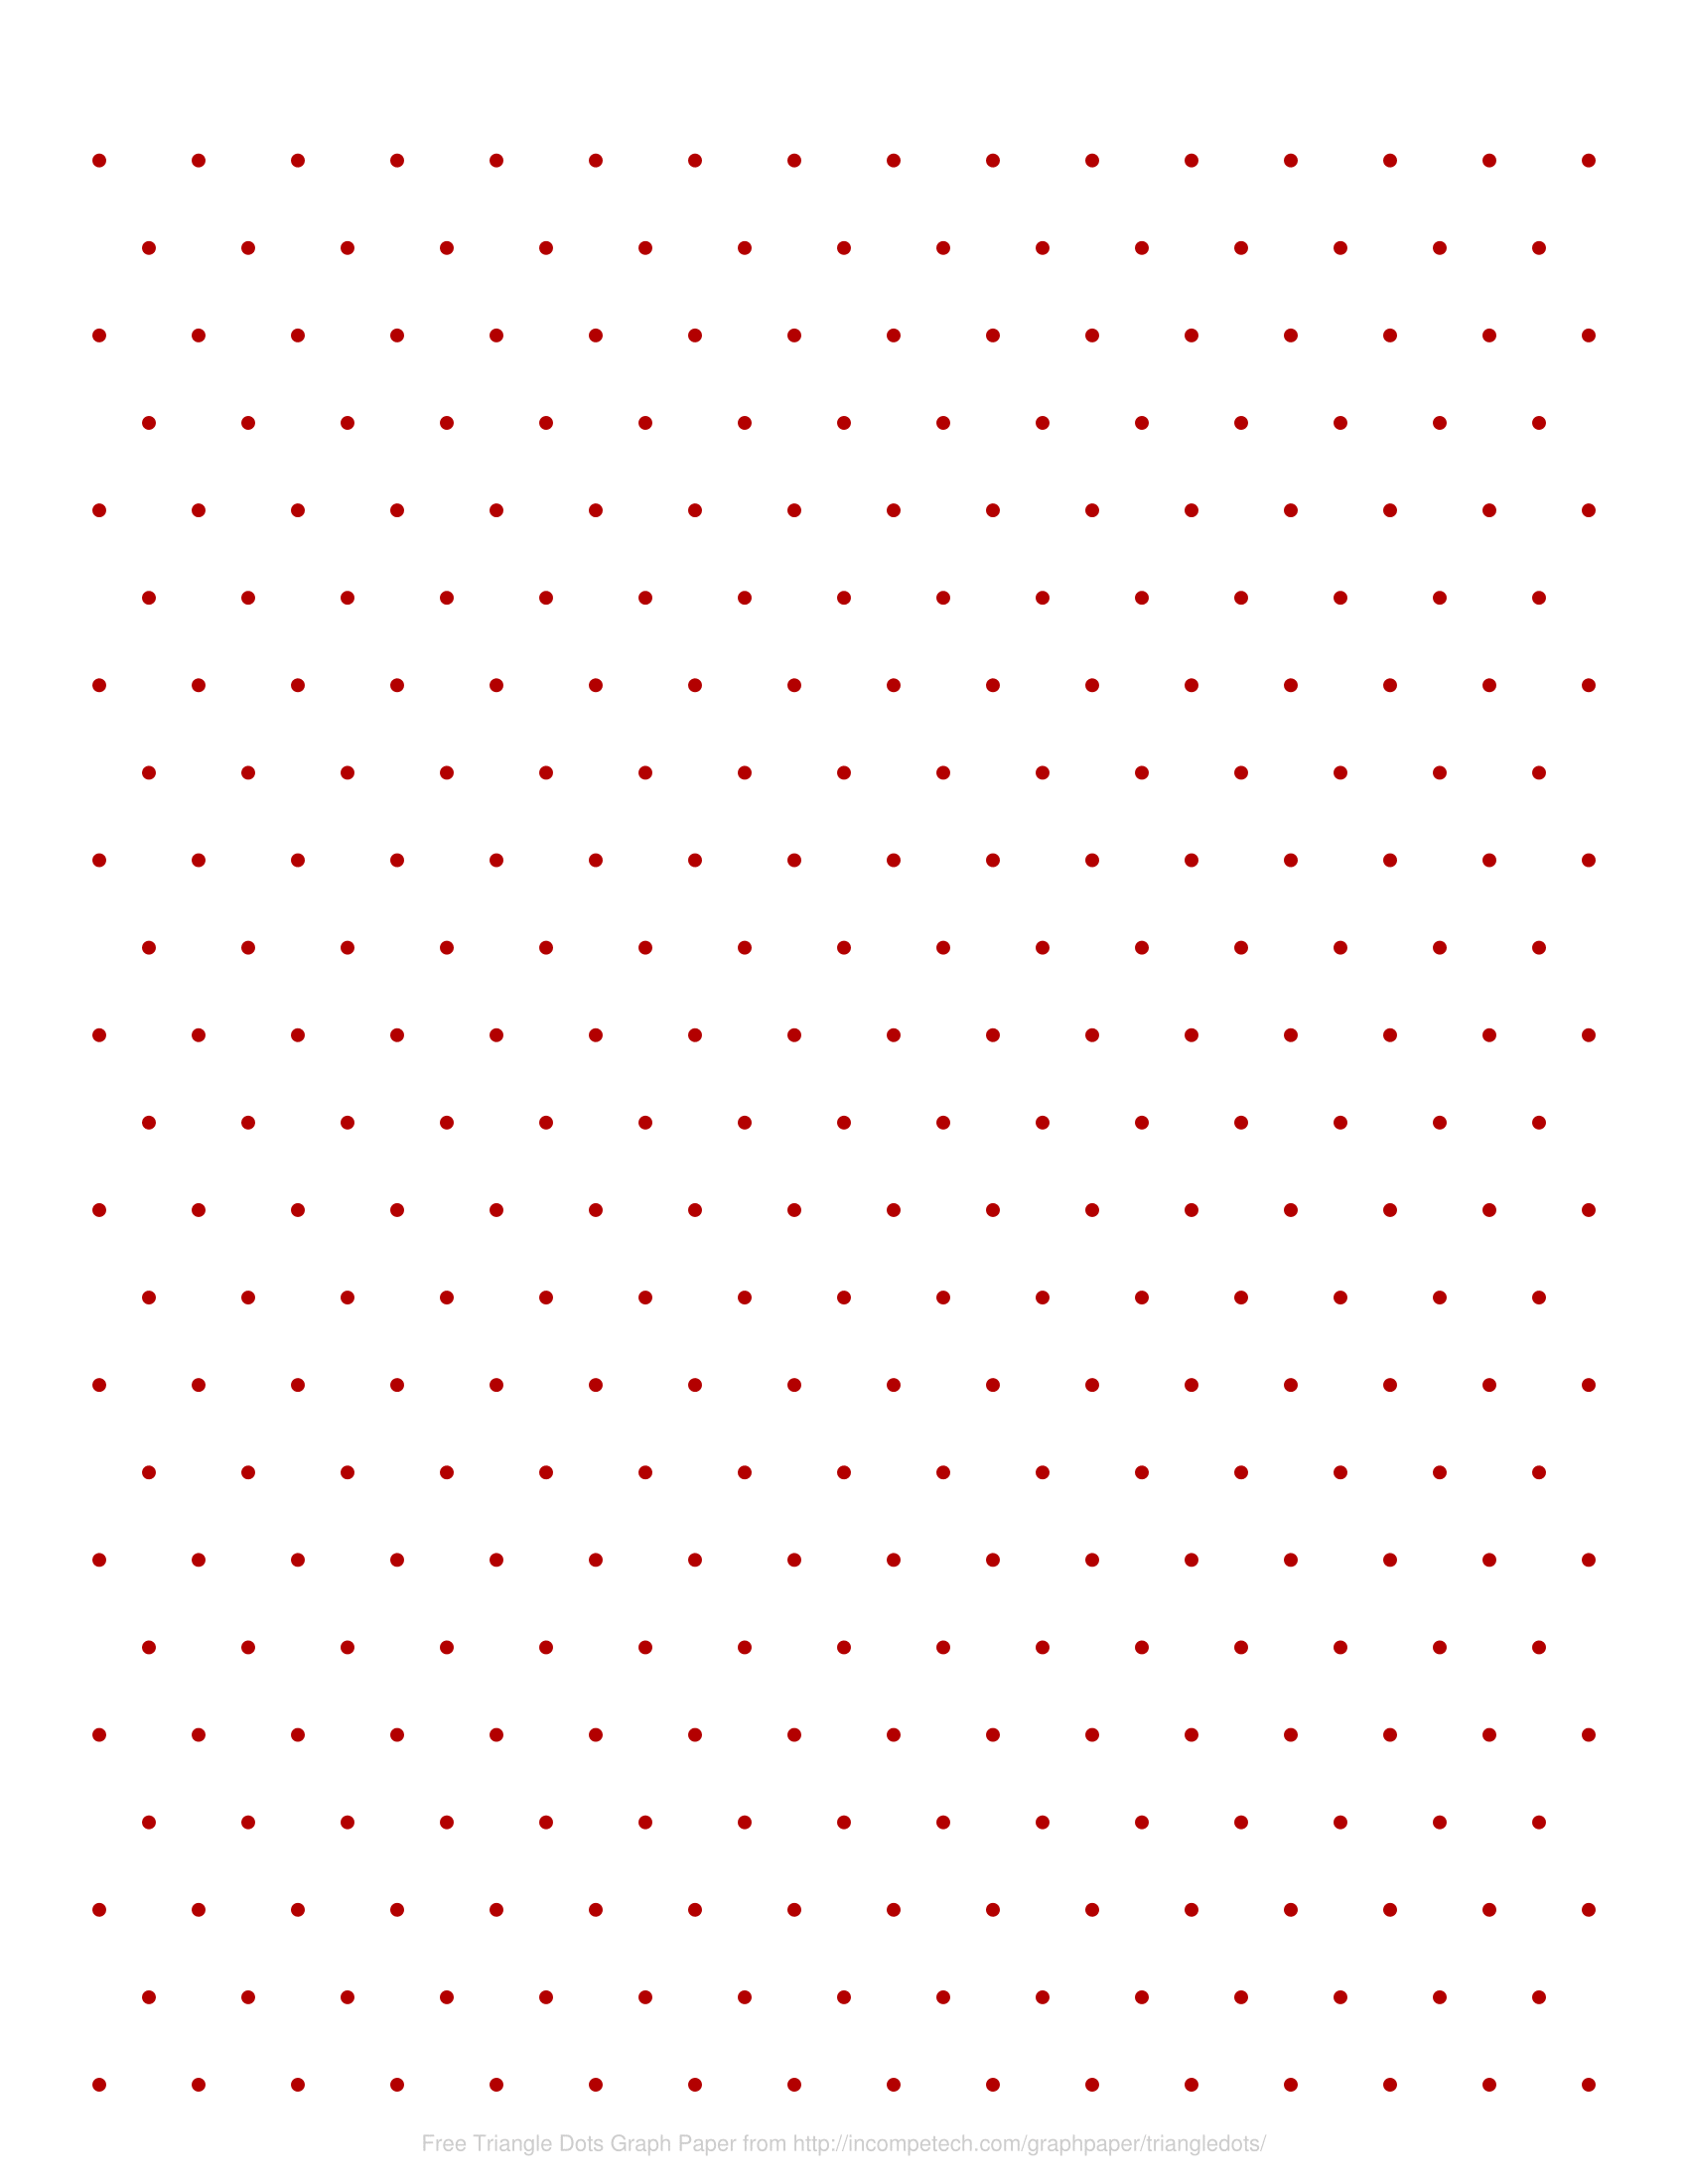 Free Online Graph Paper Triangle Dots